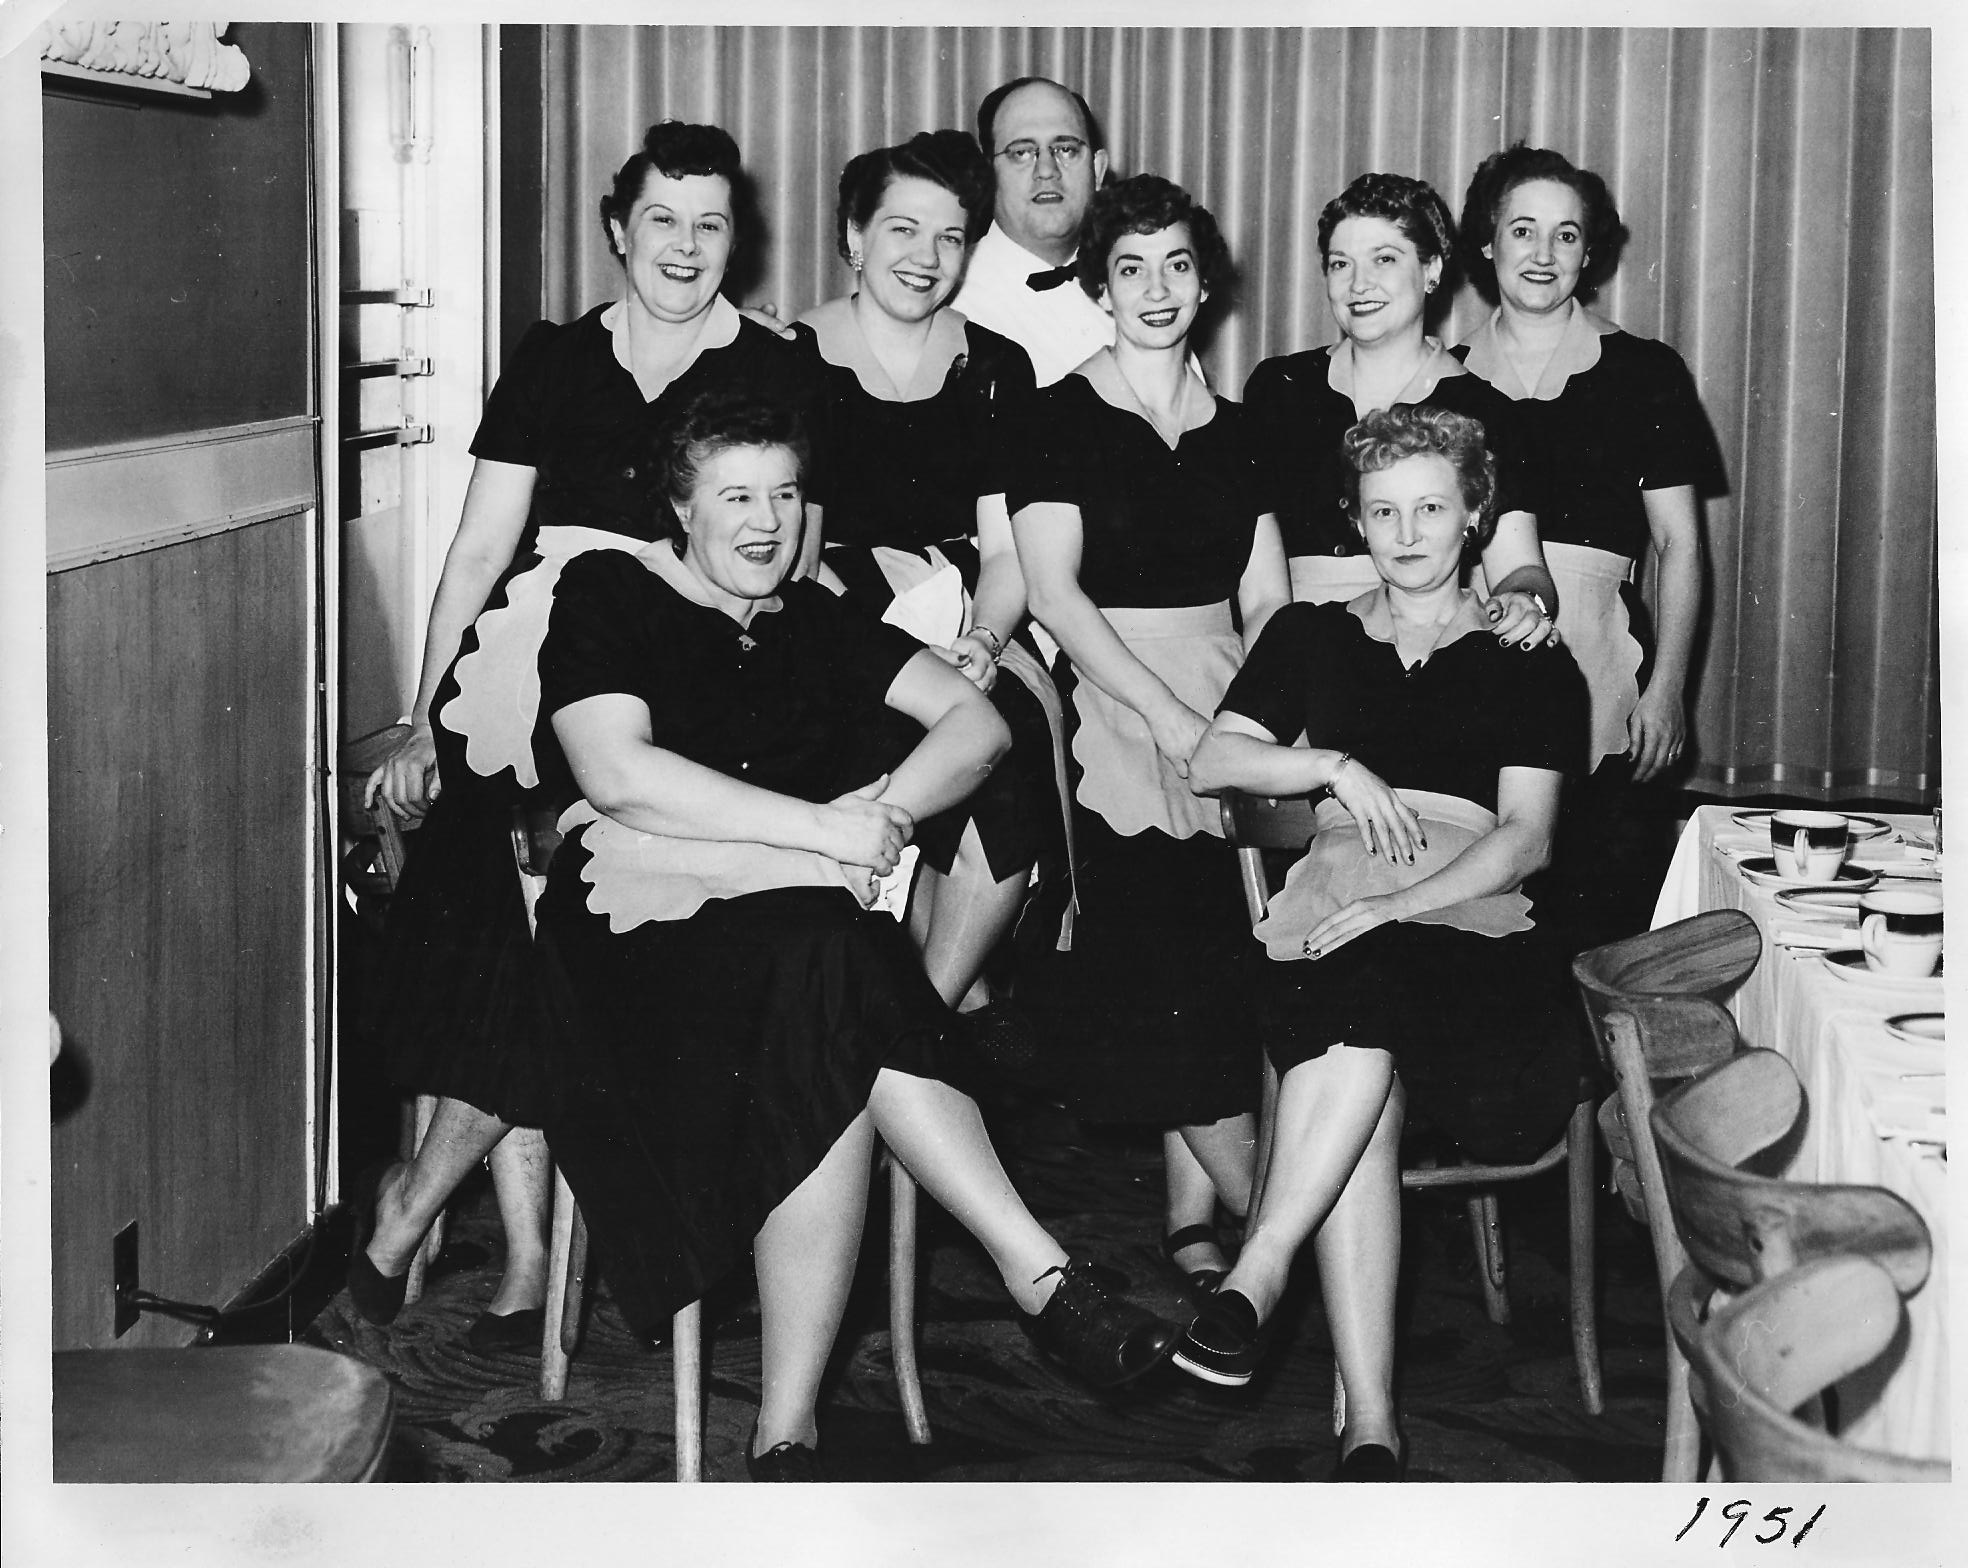 Waitresses at Phil Smidt's in 1951.